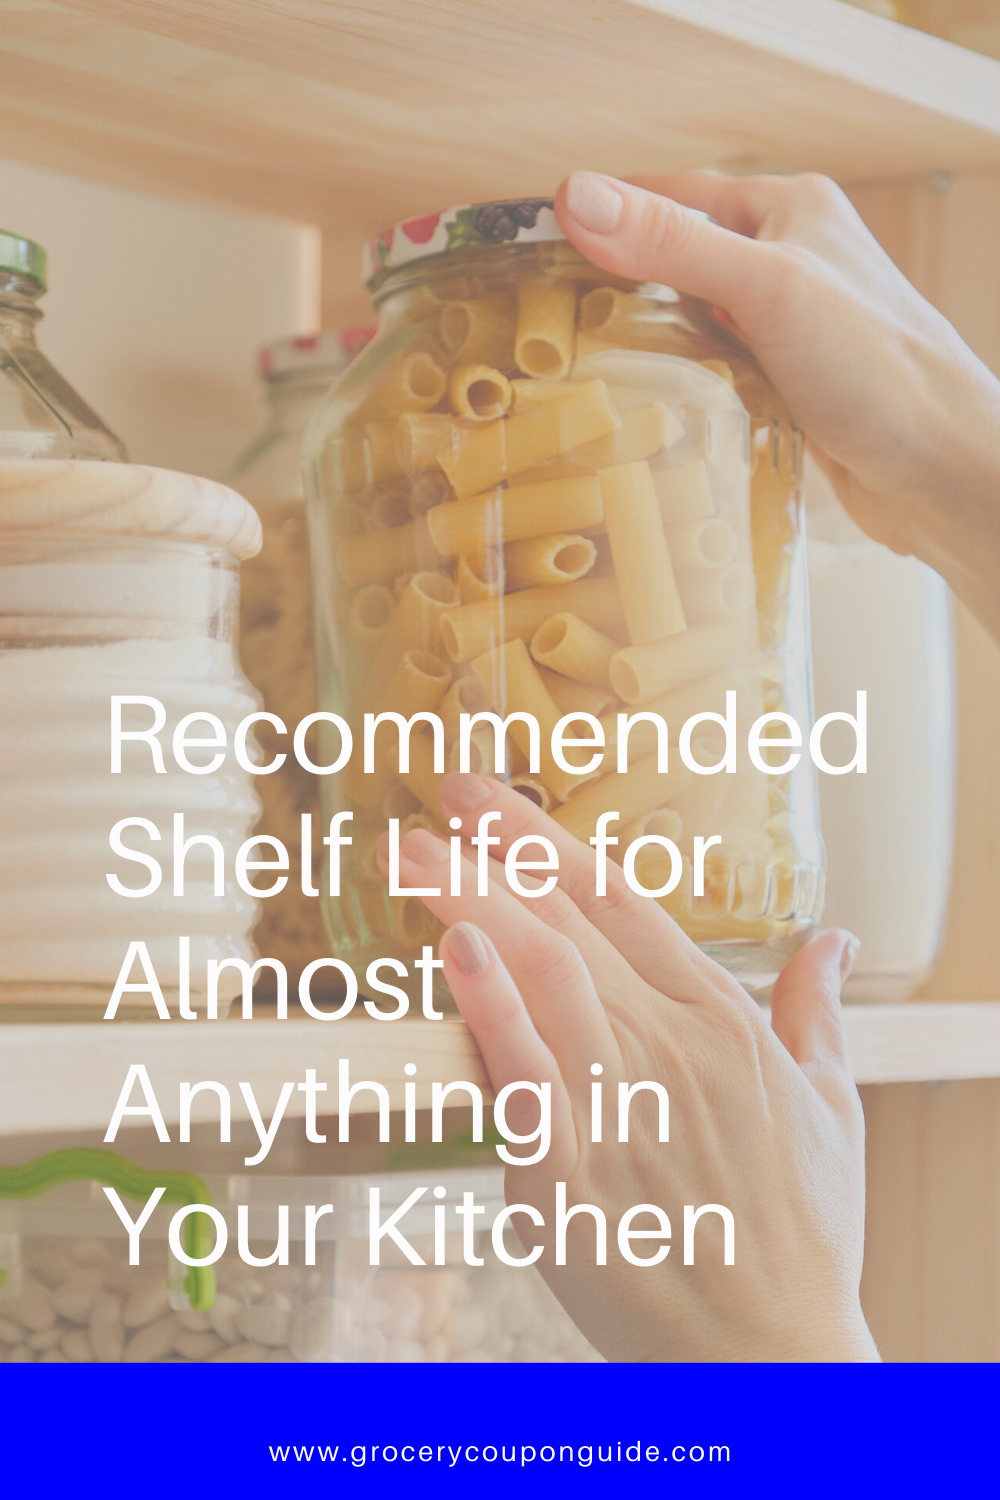 Recommended Shelf Life for Almost Anything in Your Kitchen